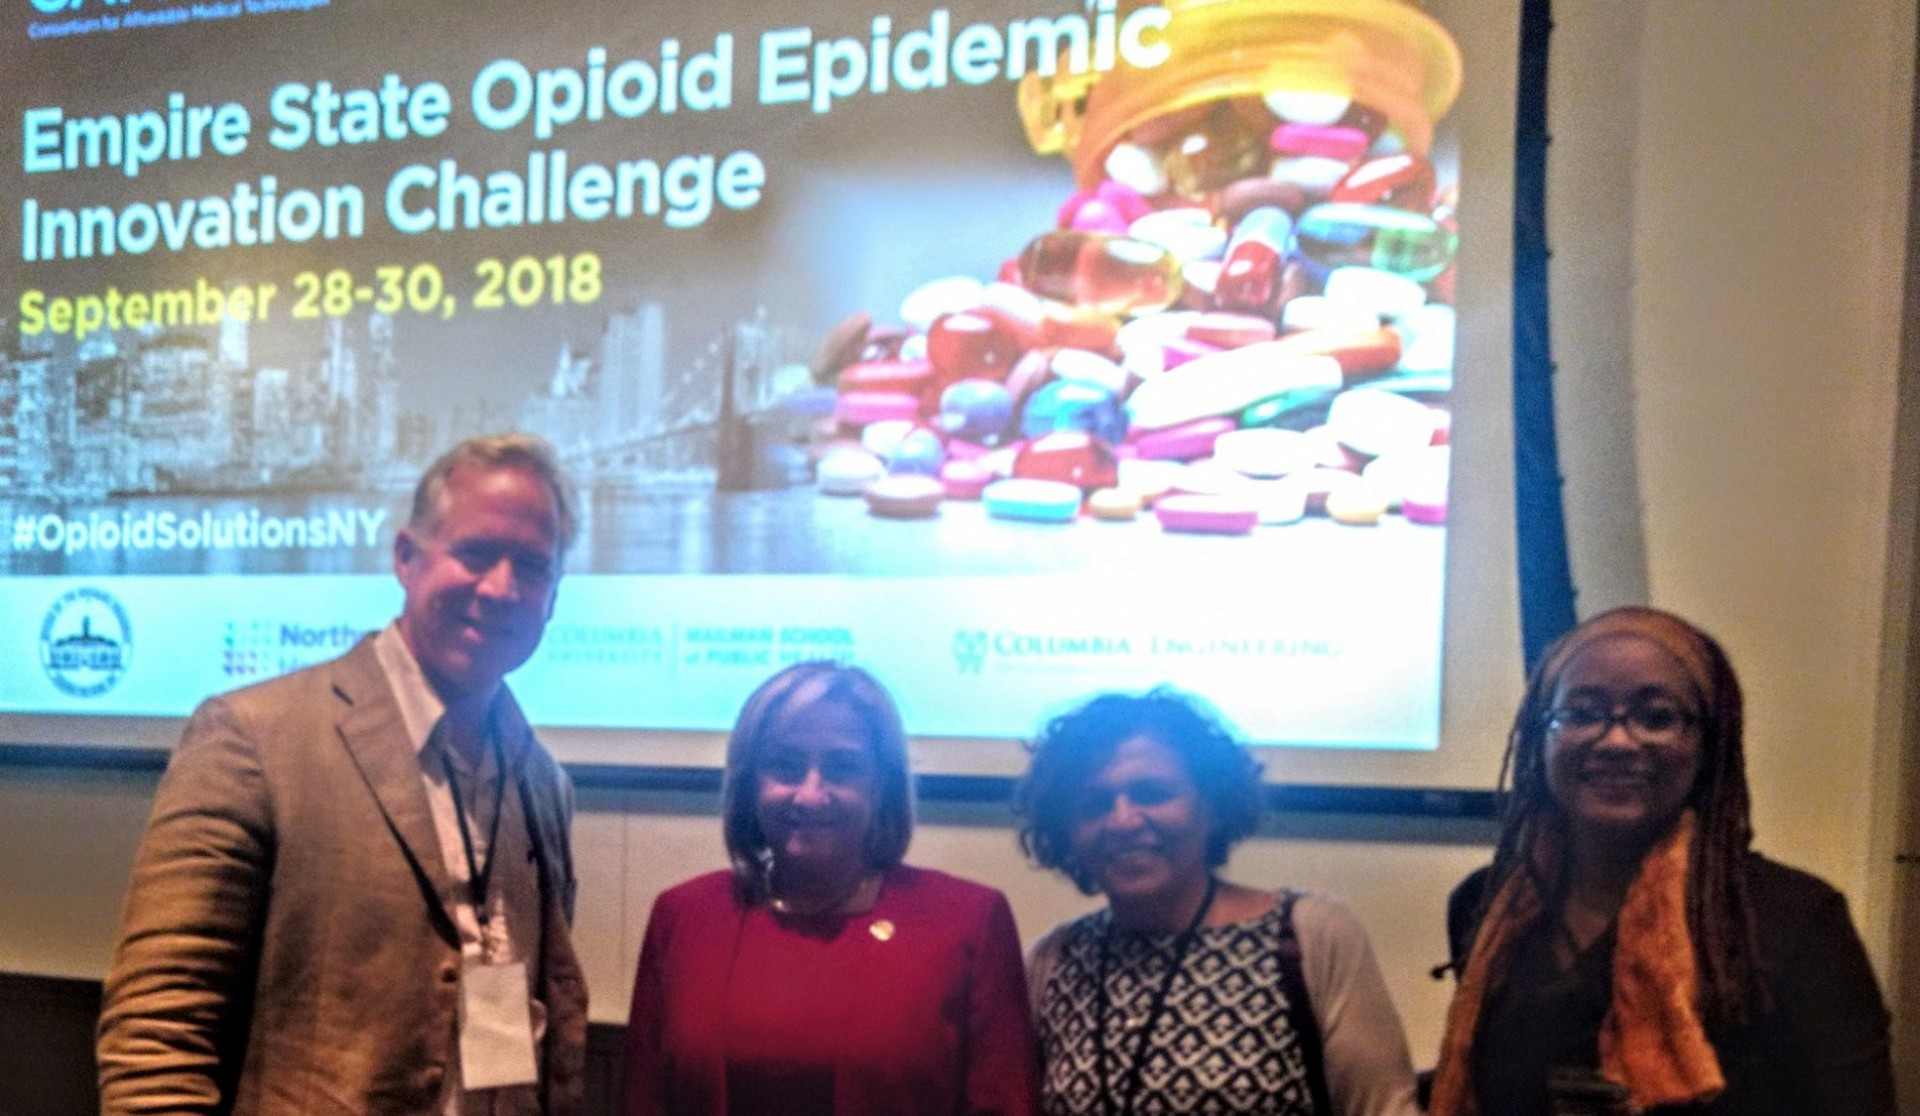 Photo showing Empire State Opioid Epidemic Innvoation Challenge